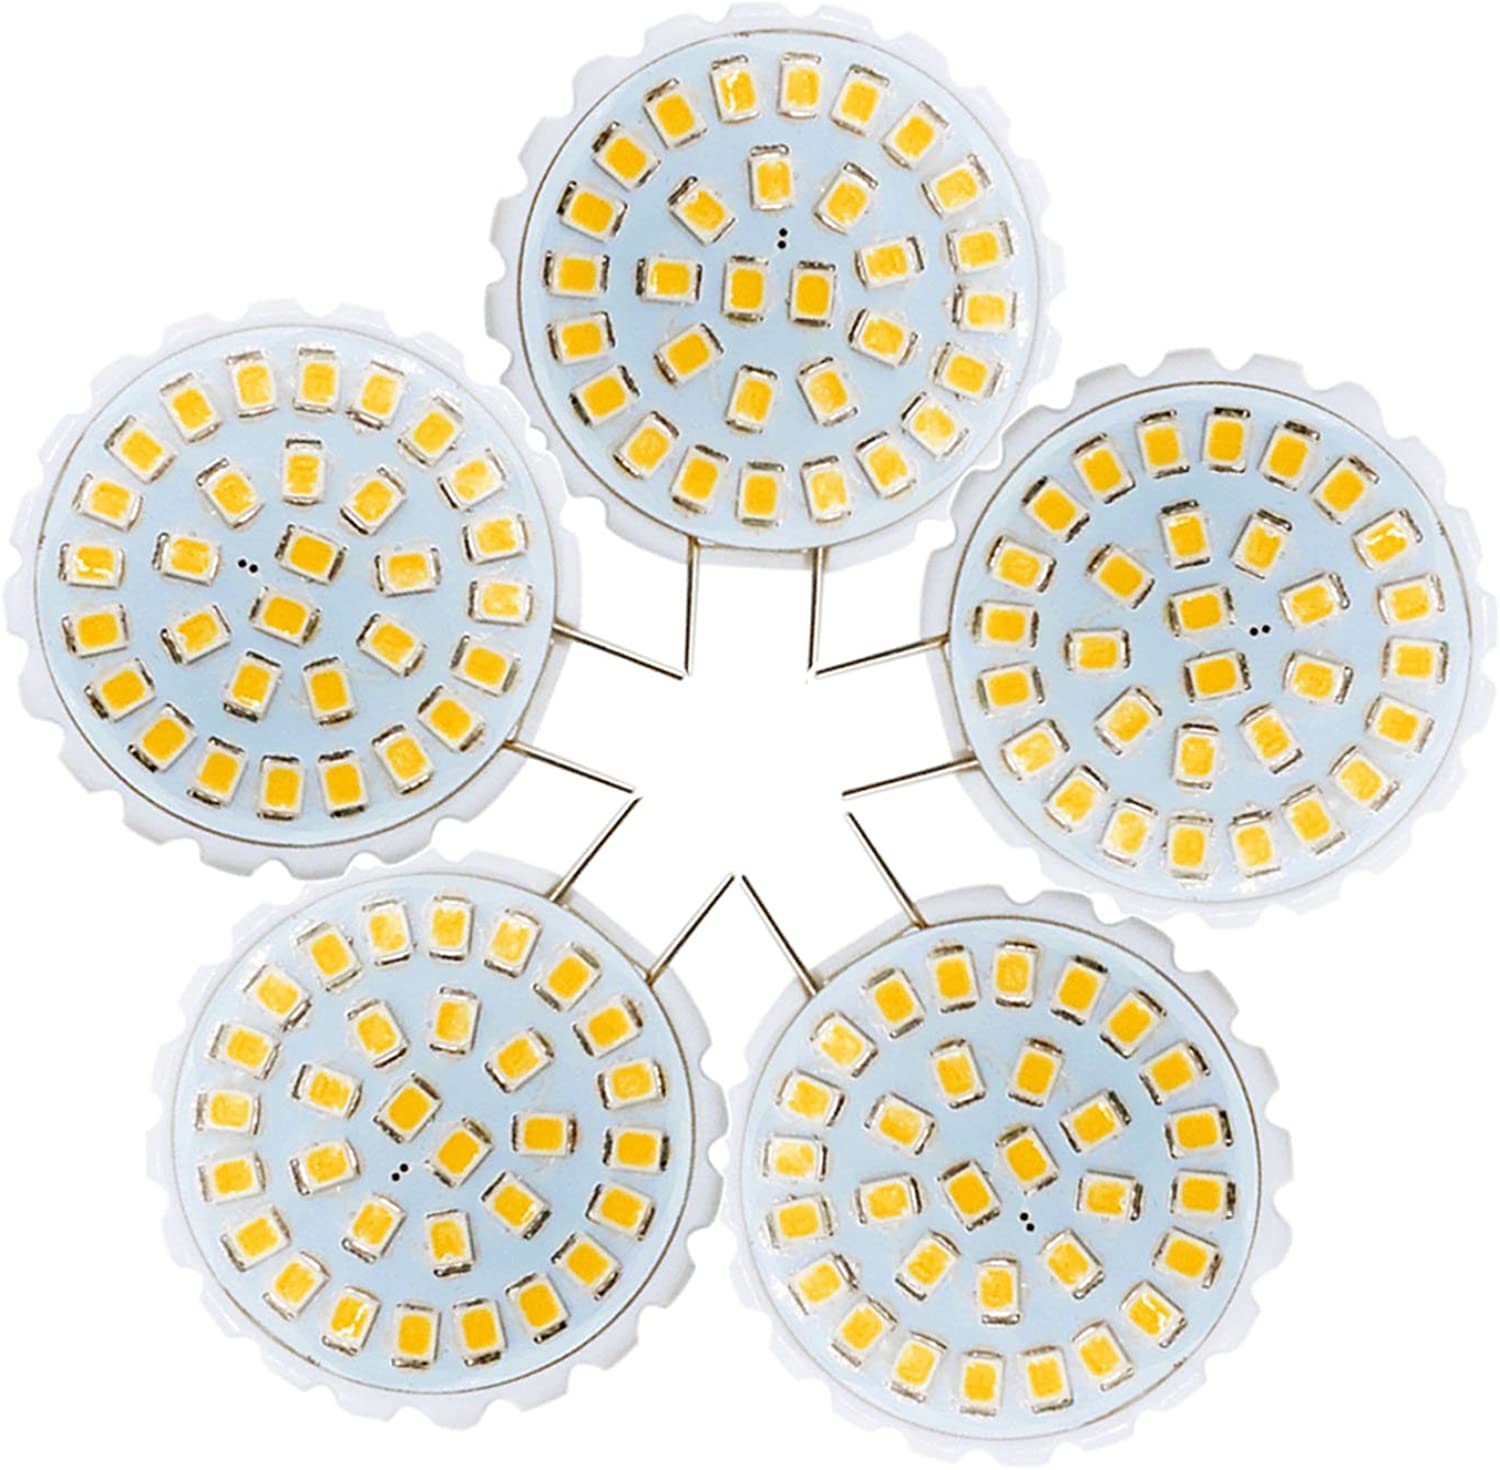 LL G8 2835 SMD 31LED 2Watts 100200Lm Cool White Chandelier Decorative Light BiPin Lights AC 110140V (Pack of 5) (Size   Cold White)